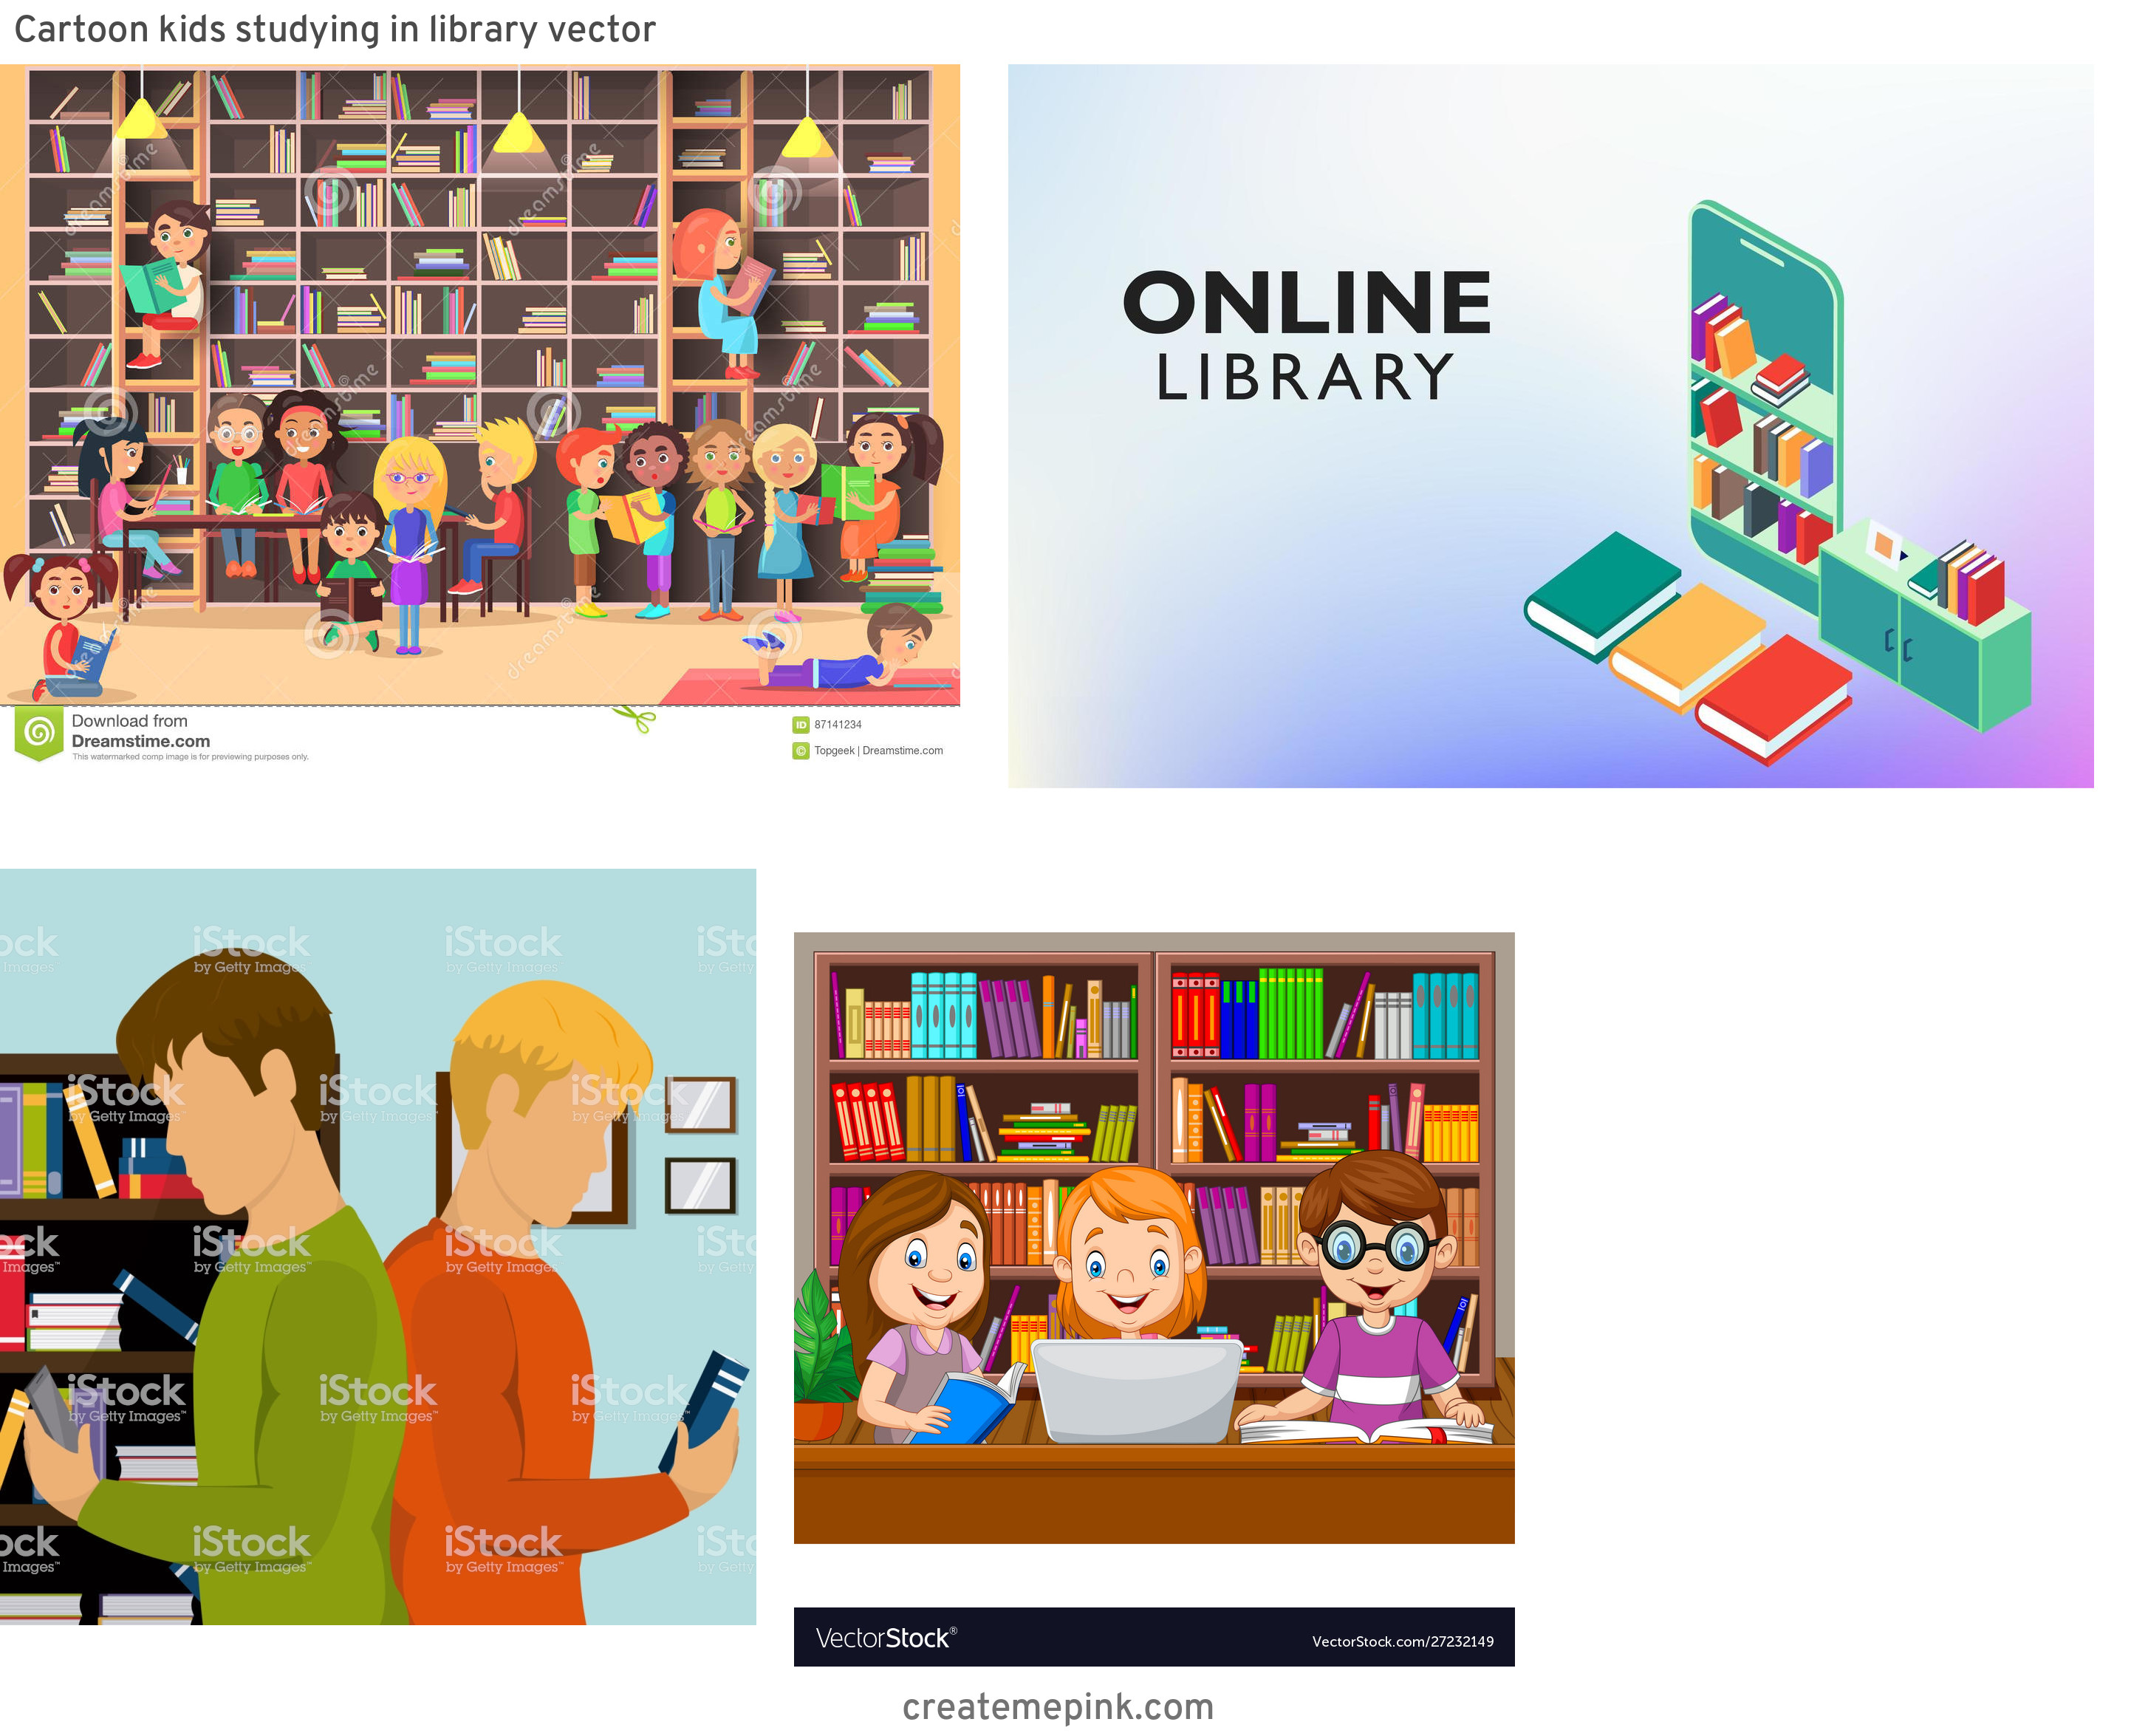 Library Vector Art: Cartoon Kids Studying In Library Vector